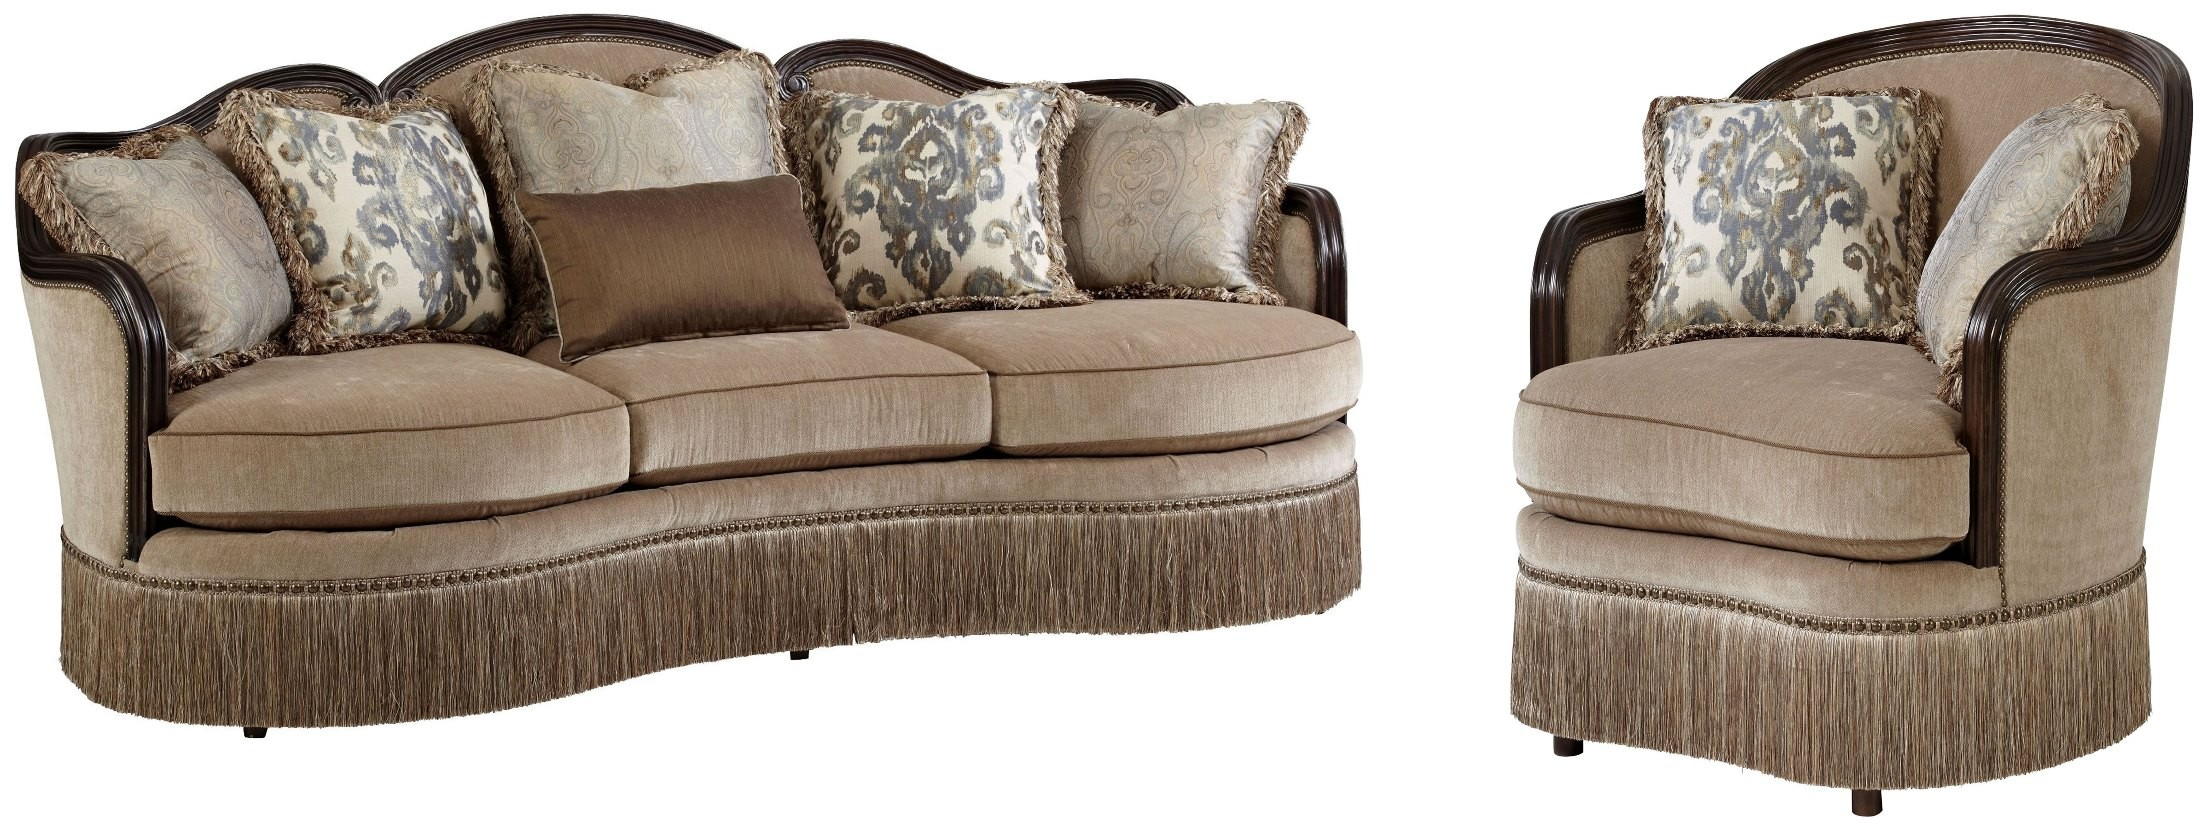 Giovanna Azure Upholstered Living Room Set From Art Coleman Furniture